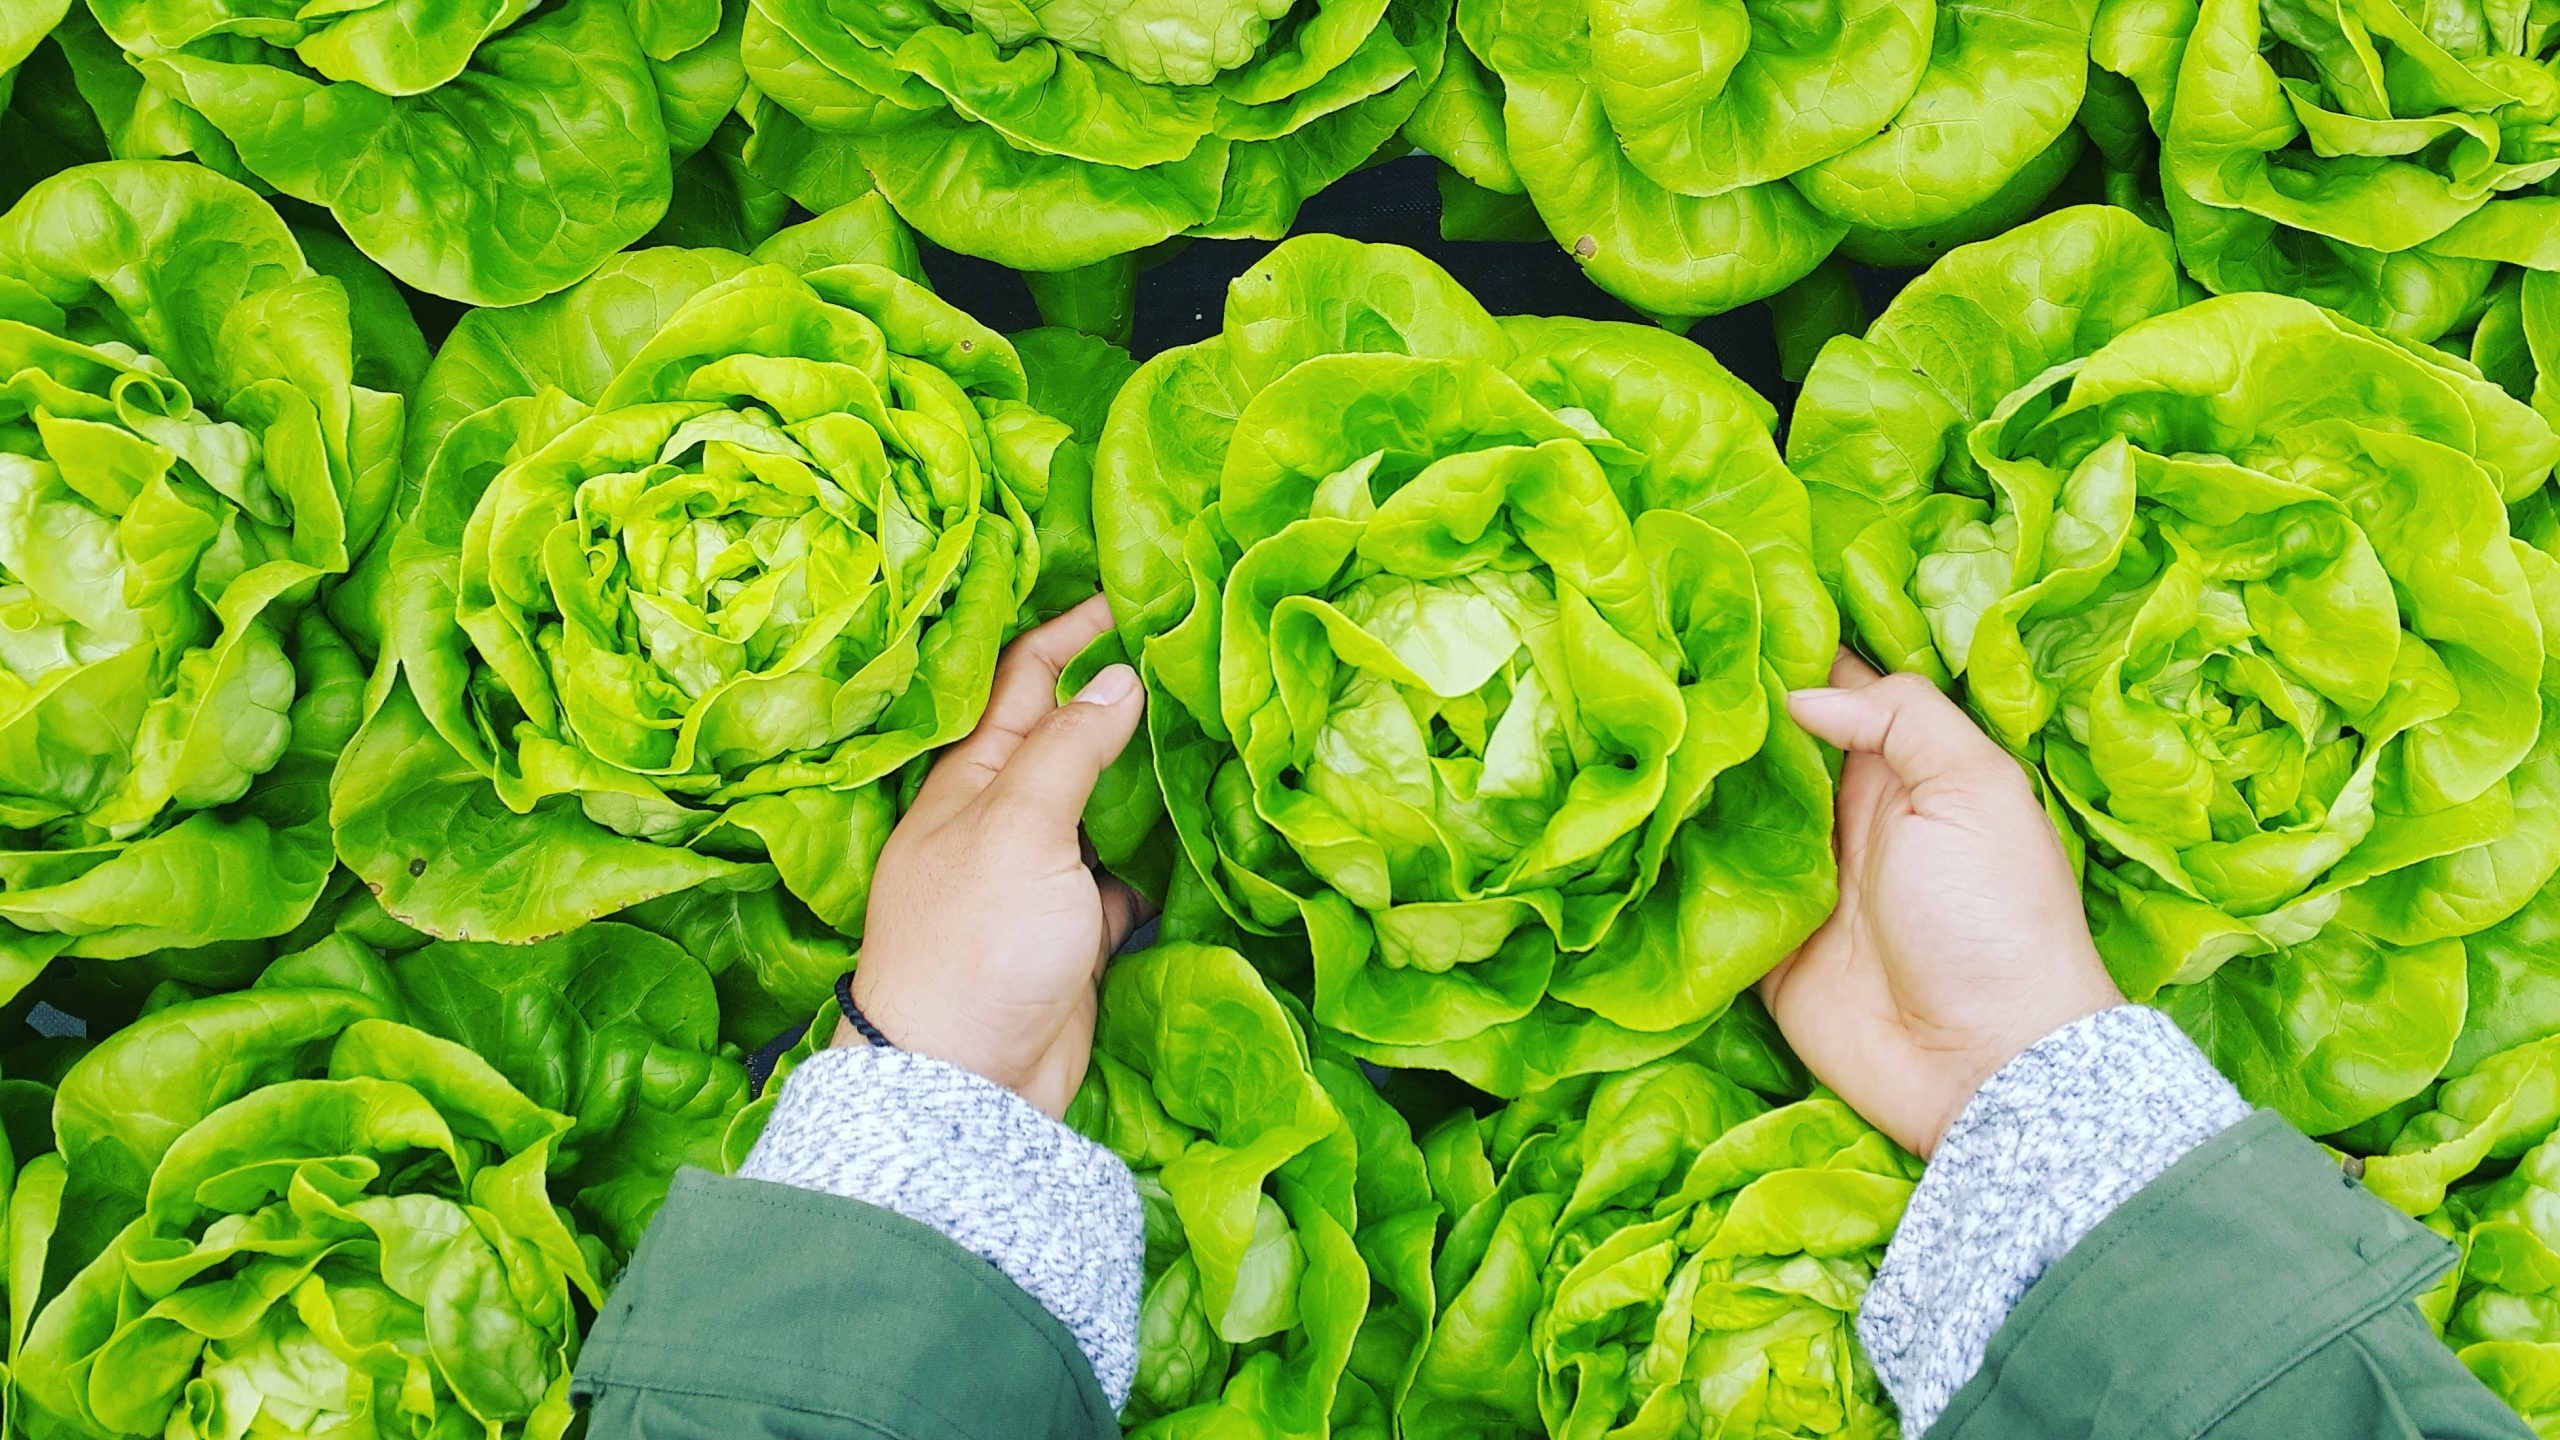 hands picking up a head of lettuce among many heads of lettuce